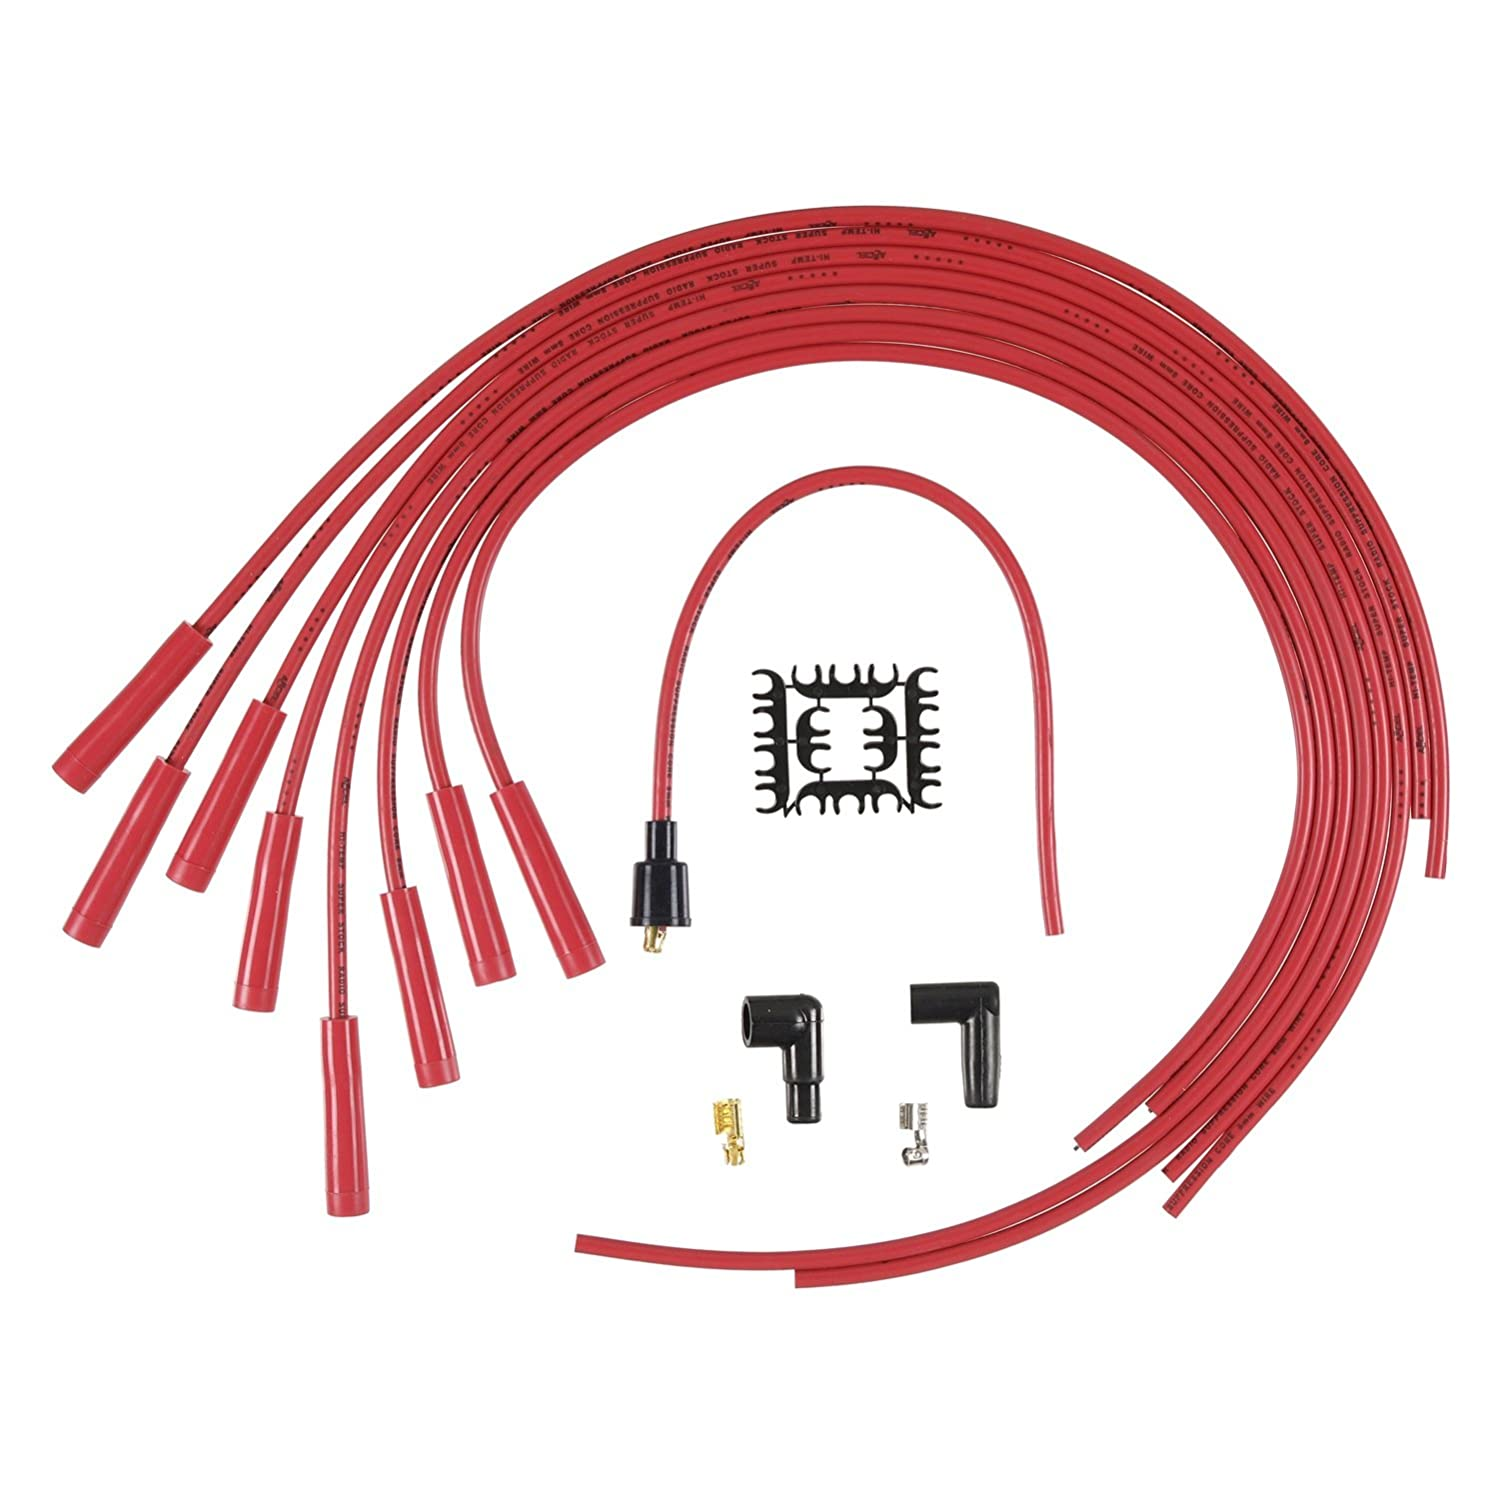 ACCEL ACC 4040R 8mm Super Stock Copper Universal Wire Set - Red